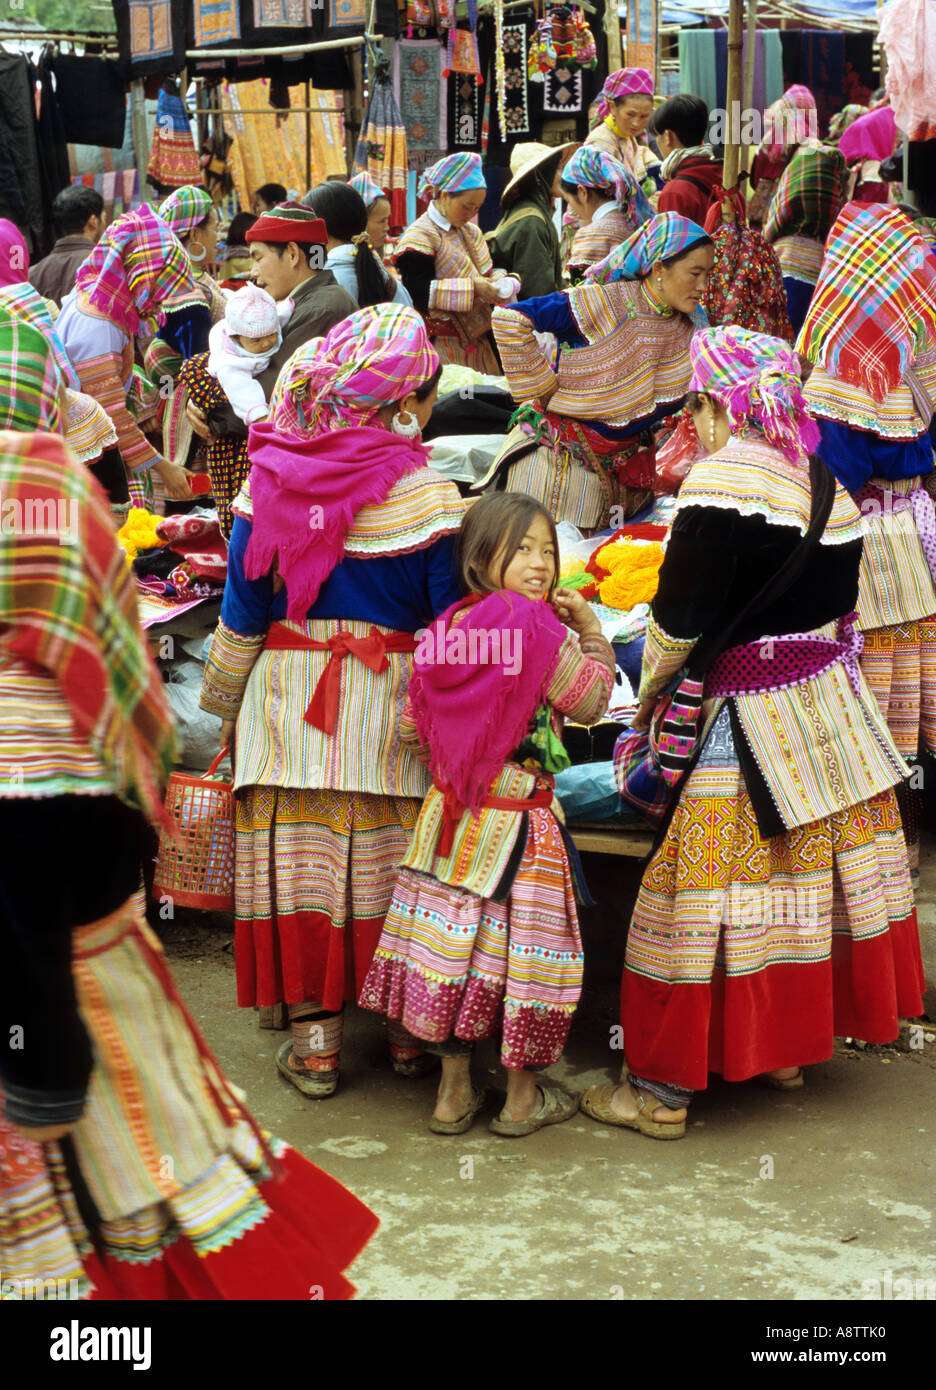 Group of traditionally dressed Flower Hmong women and a young girl at the Sunday market, Bac Ha, NW Viet Nam Stock Photo